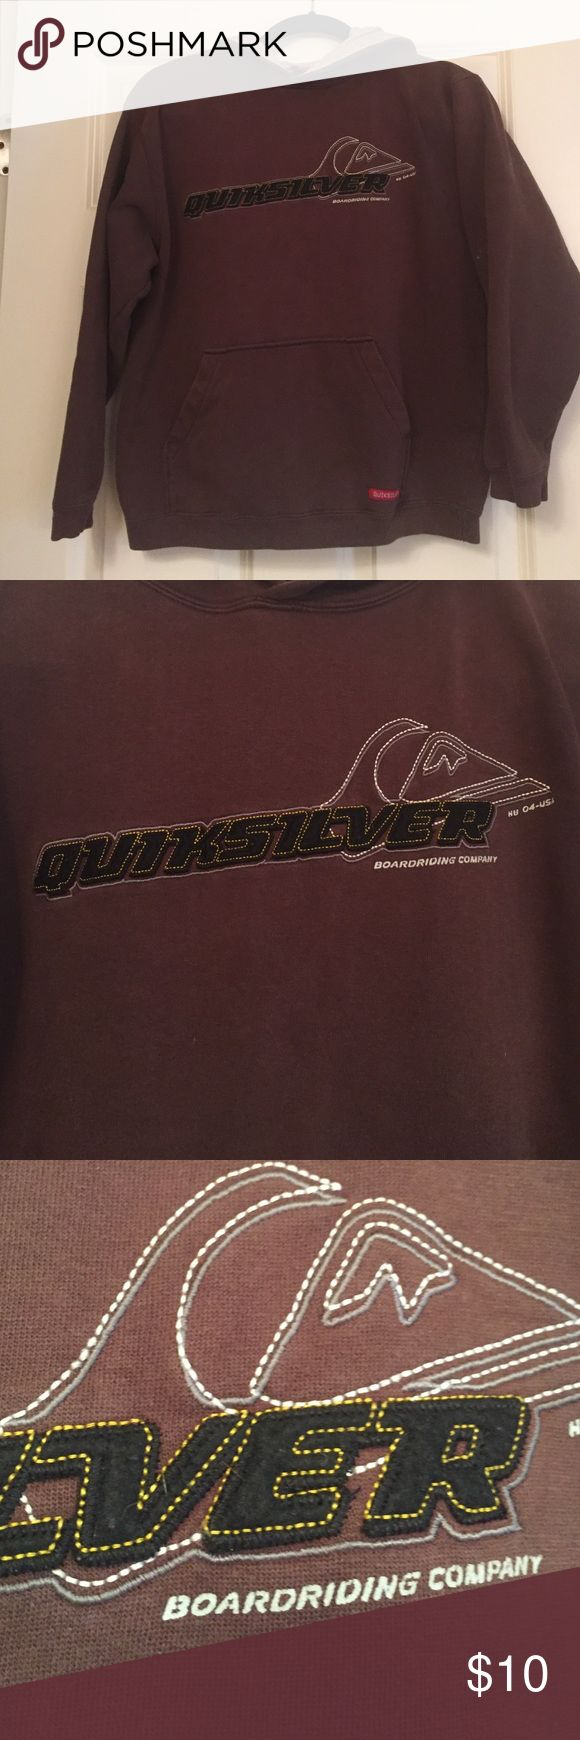 Boys Quicksilver Sweatshirt Size Medium Boys Quicksilver sweatshirt. Brown pullover. In excellent condition. I would say this is for an average built 10 year old. Comes from a non smoking home. Quiksilver Shirts & Tops Sweatshirts & Hoodies